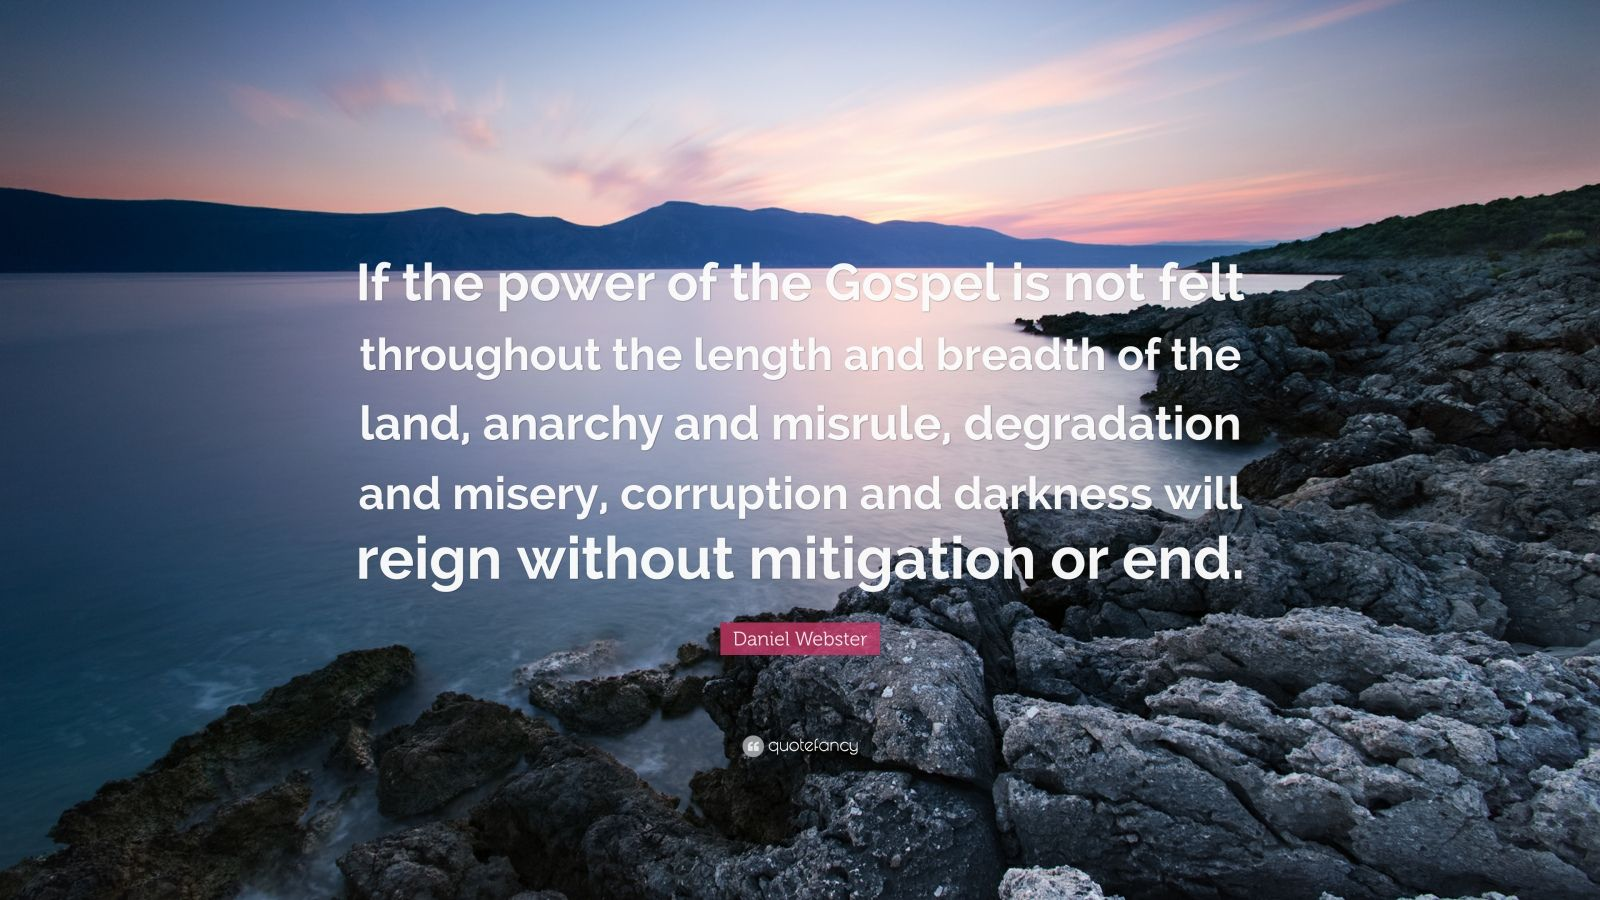 """Daniel Webster Quote: """"If the power of the Gospel is not felt throughout the length and breadth of the land, anarchy and misrule, degradation and misery, corruption and darkness will reign without mitigation or end."""""""